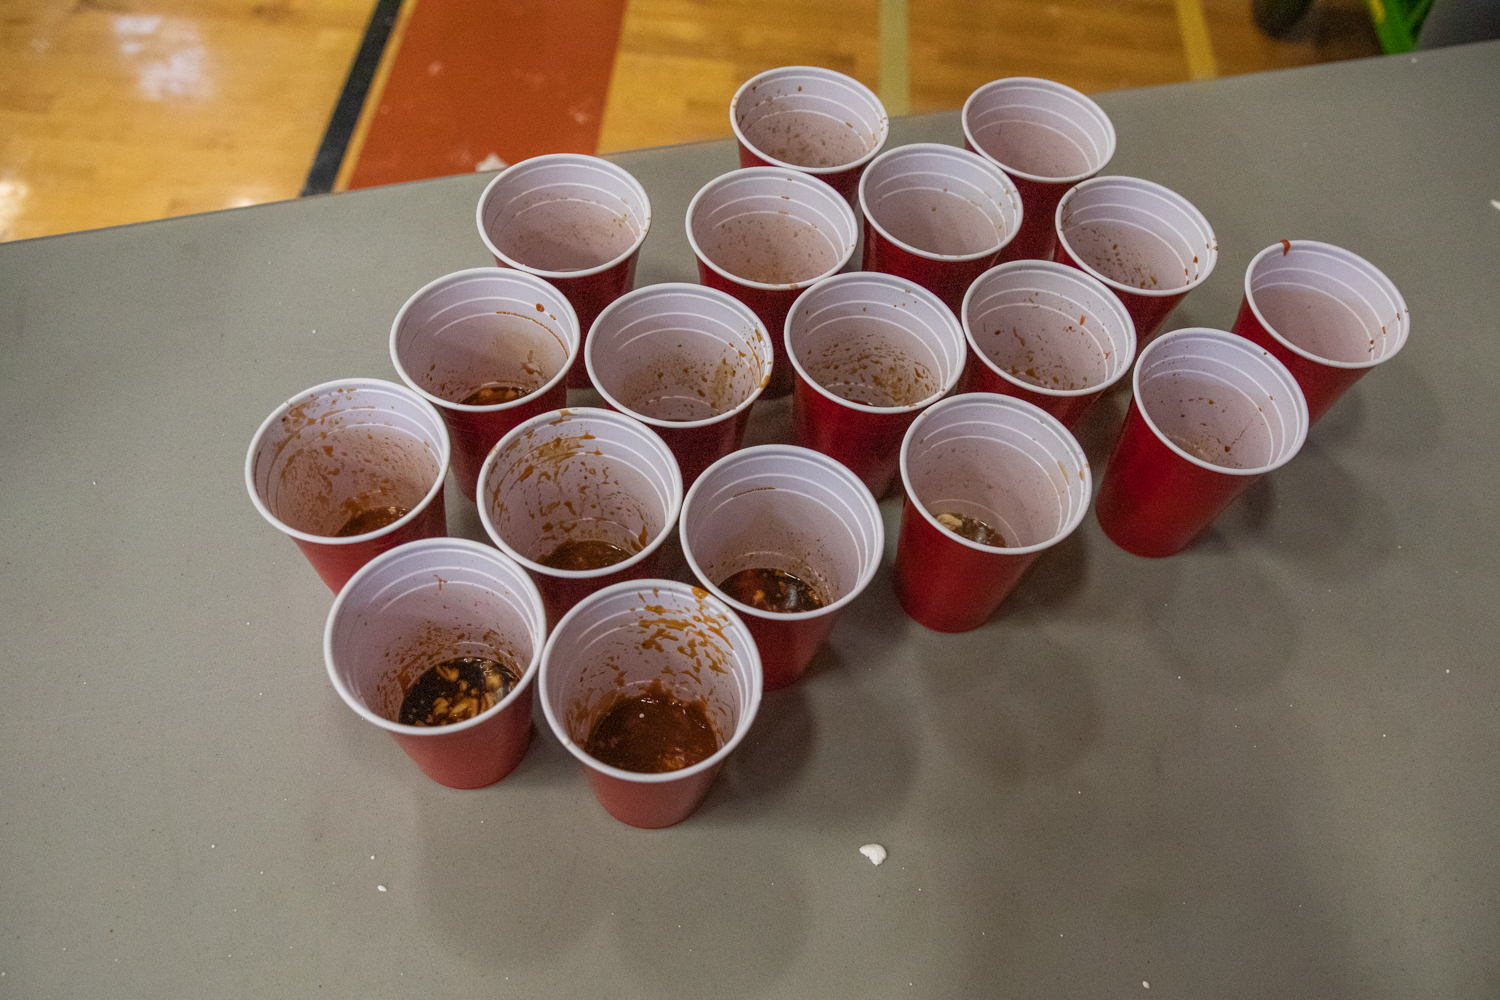 The+second+game%2C+one+where+the+royalty+had+to+drink+out+of+these+cups+filled+with+a+mystery+drink%2C+was+cancelled+due+to+health+concerns.+